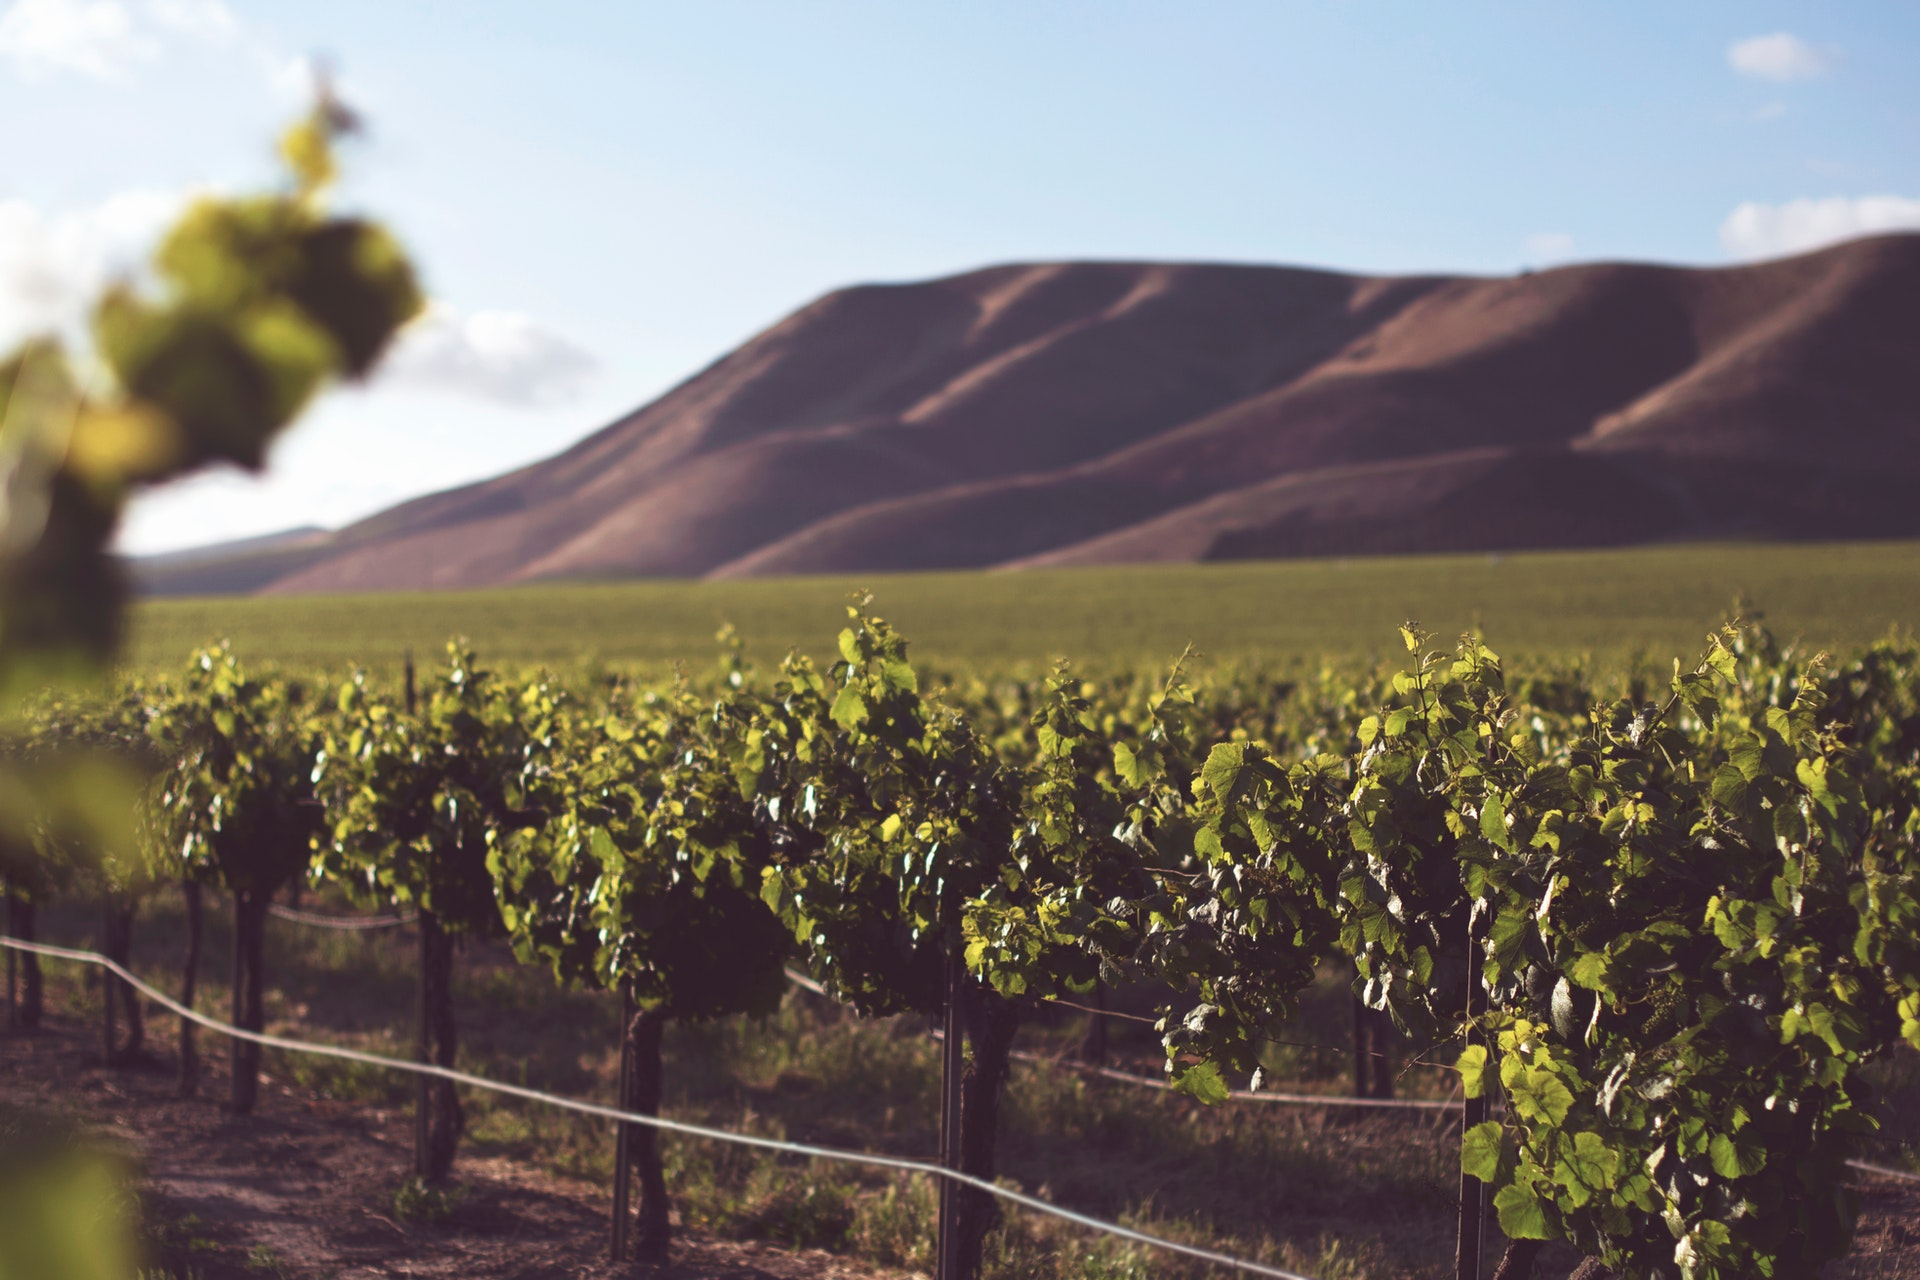 Travel Vineyards CA – A Day of Relaxation at One of the Wealthiest Areas of Wine Country